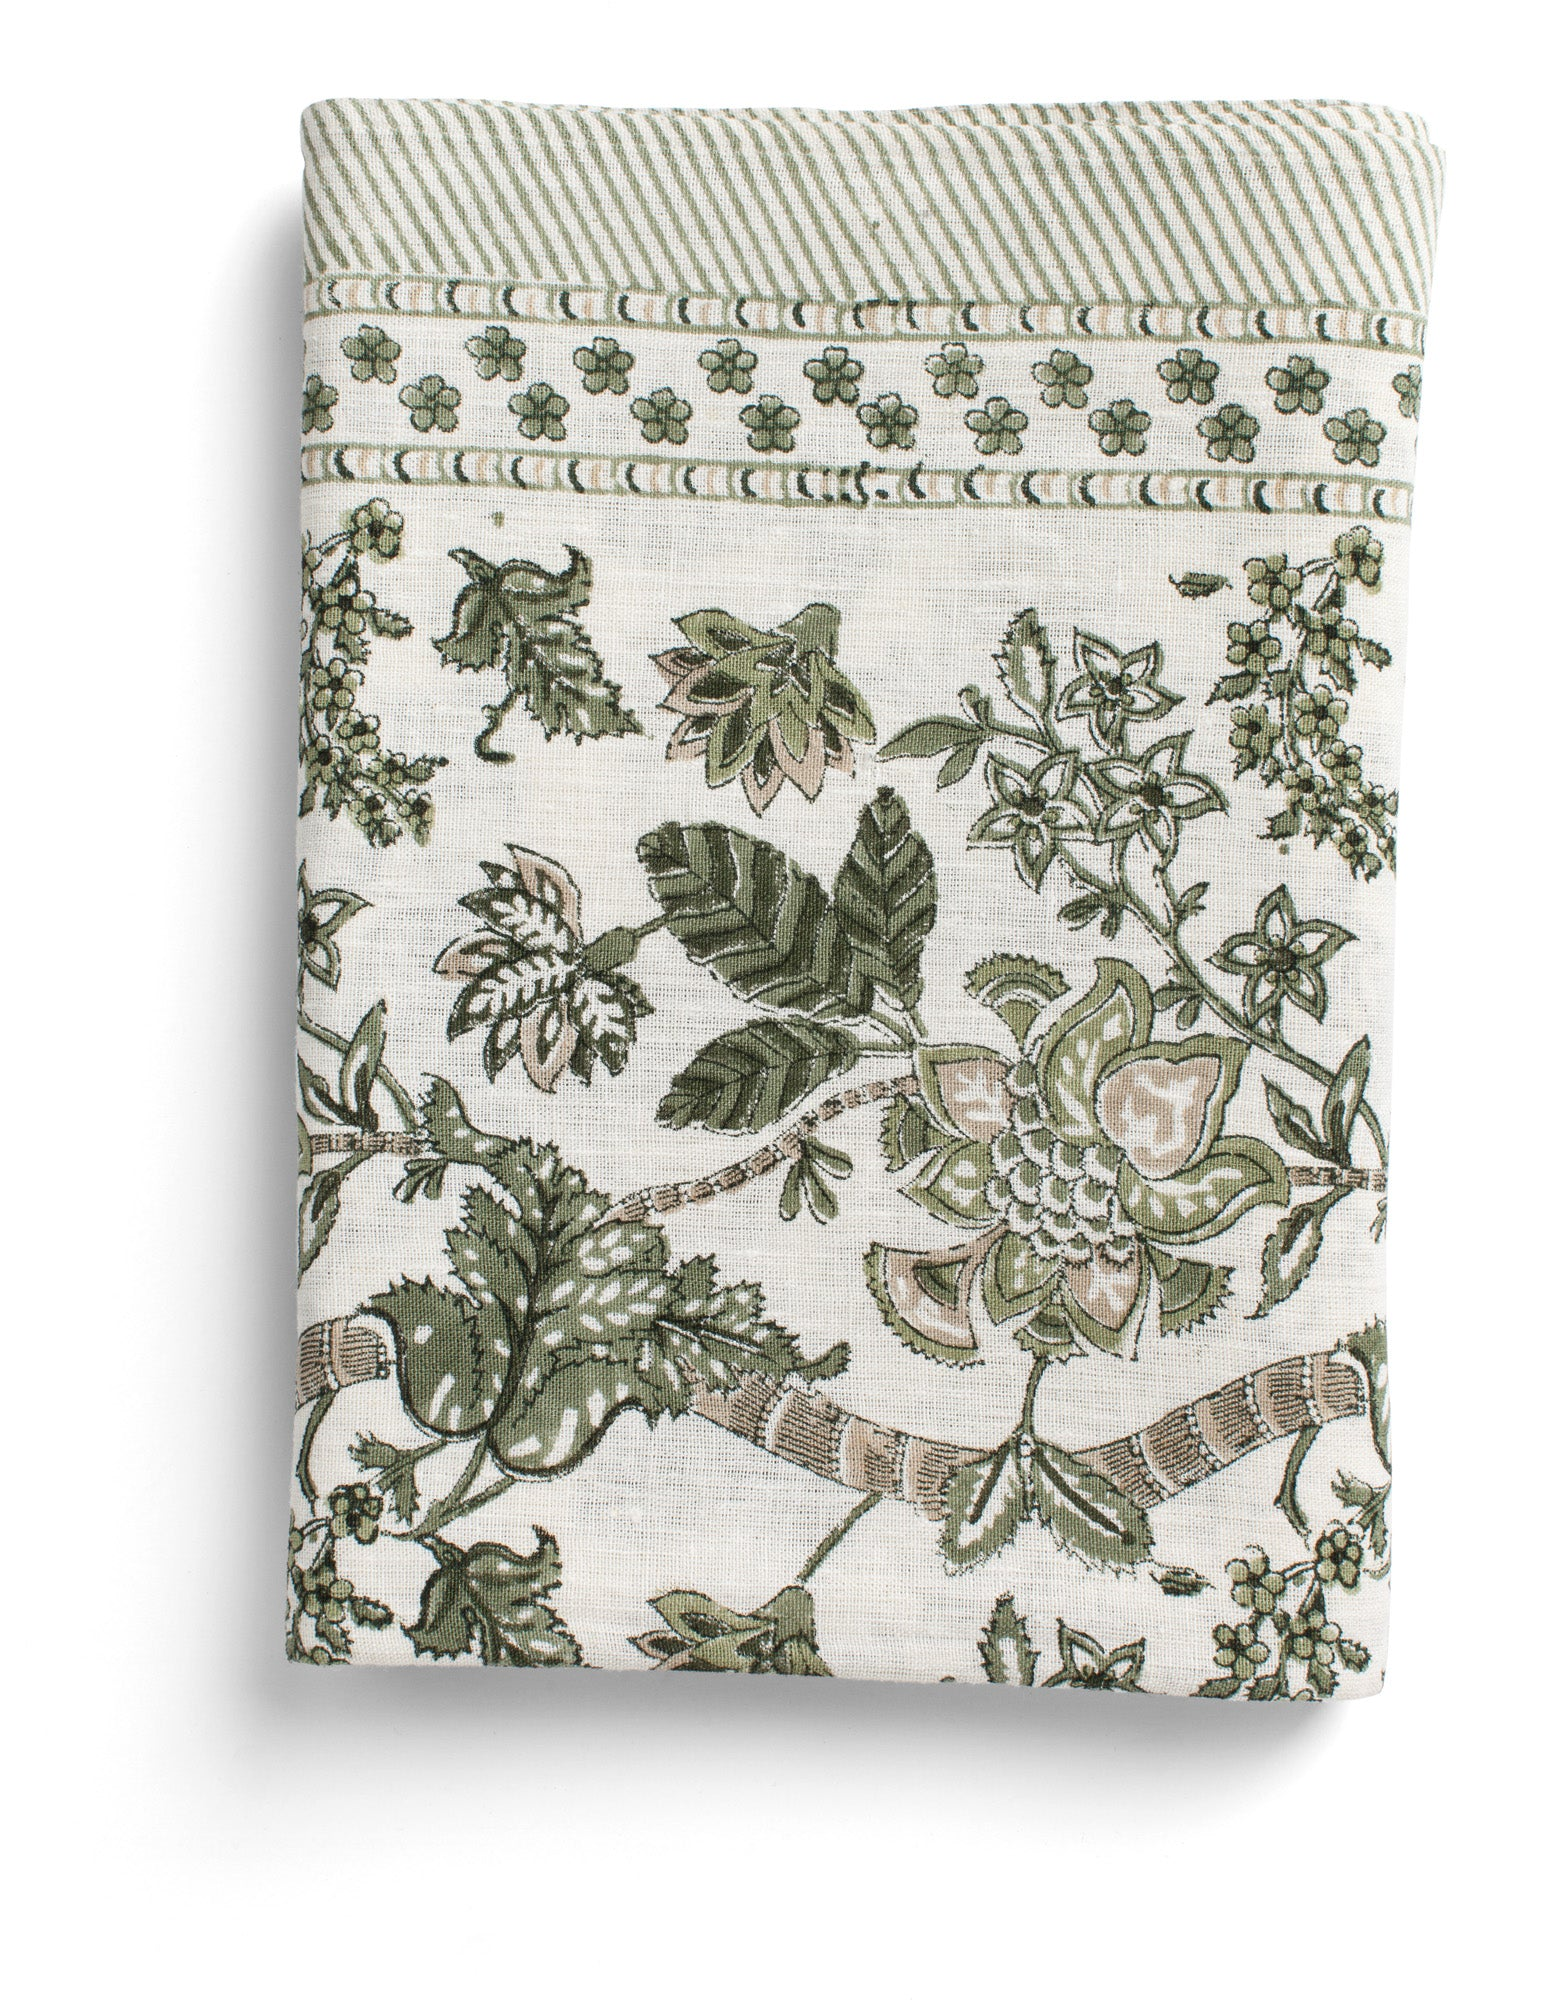 Linen Tablecloth with Floral print in Olive